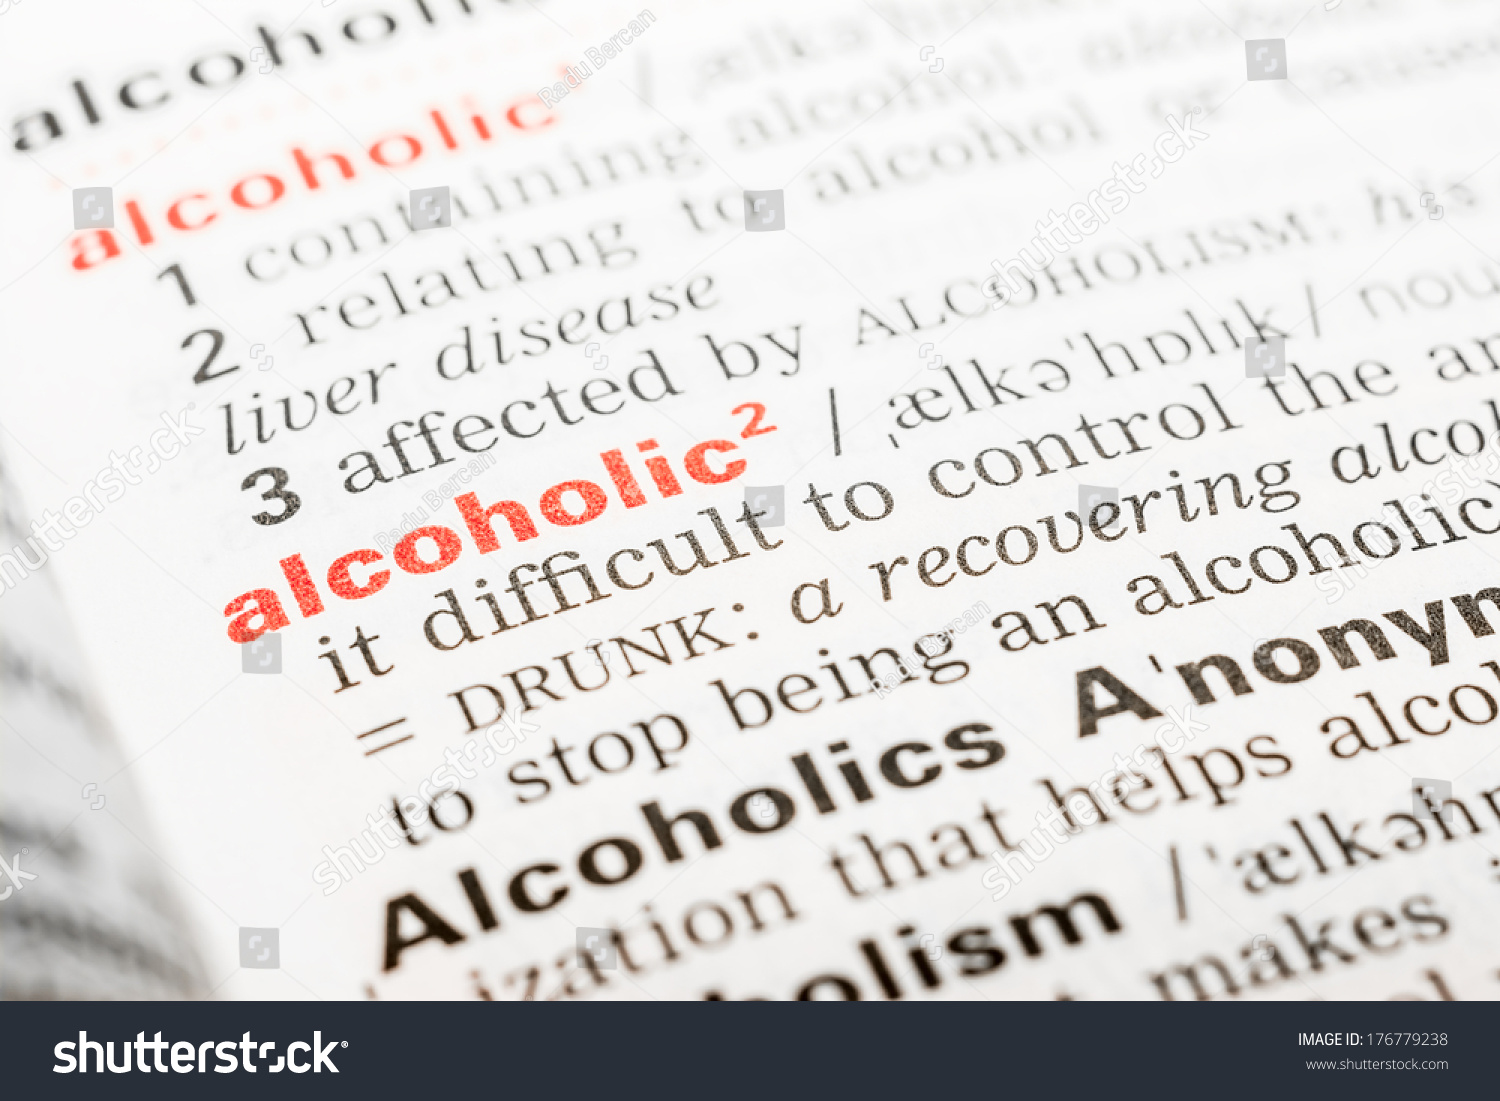 alcoholic word definition dictionary stock photo (edit now